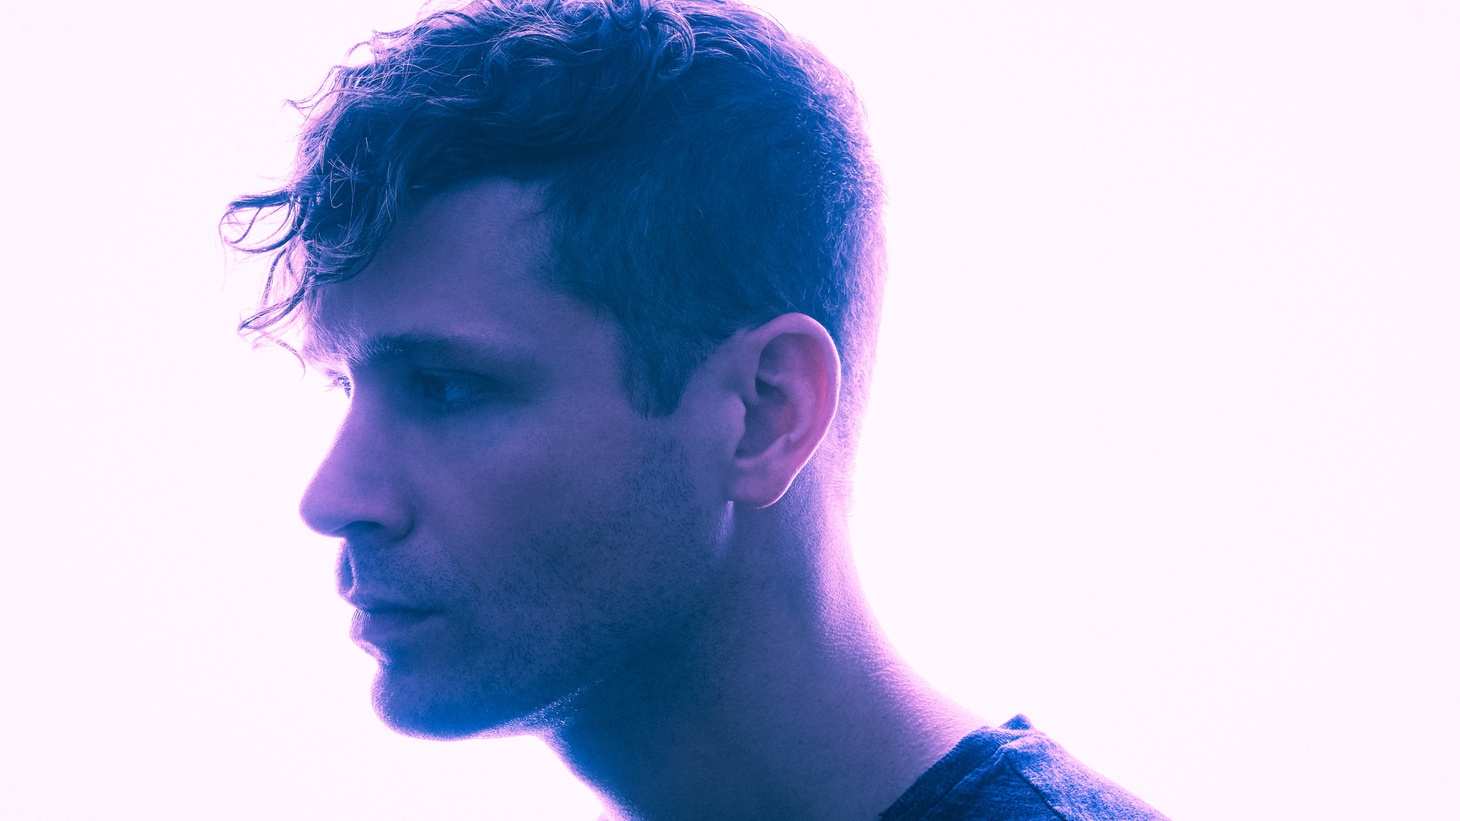 Moon Boots has developed a cult following for his super catchy, disco-infused dance music.